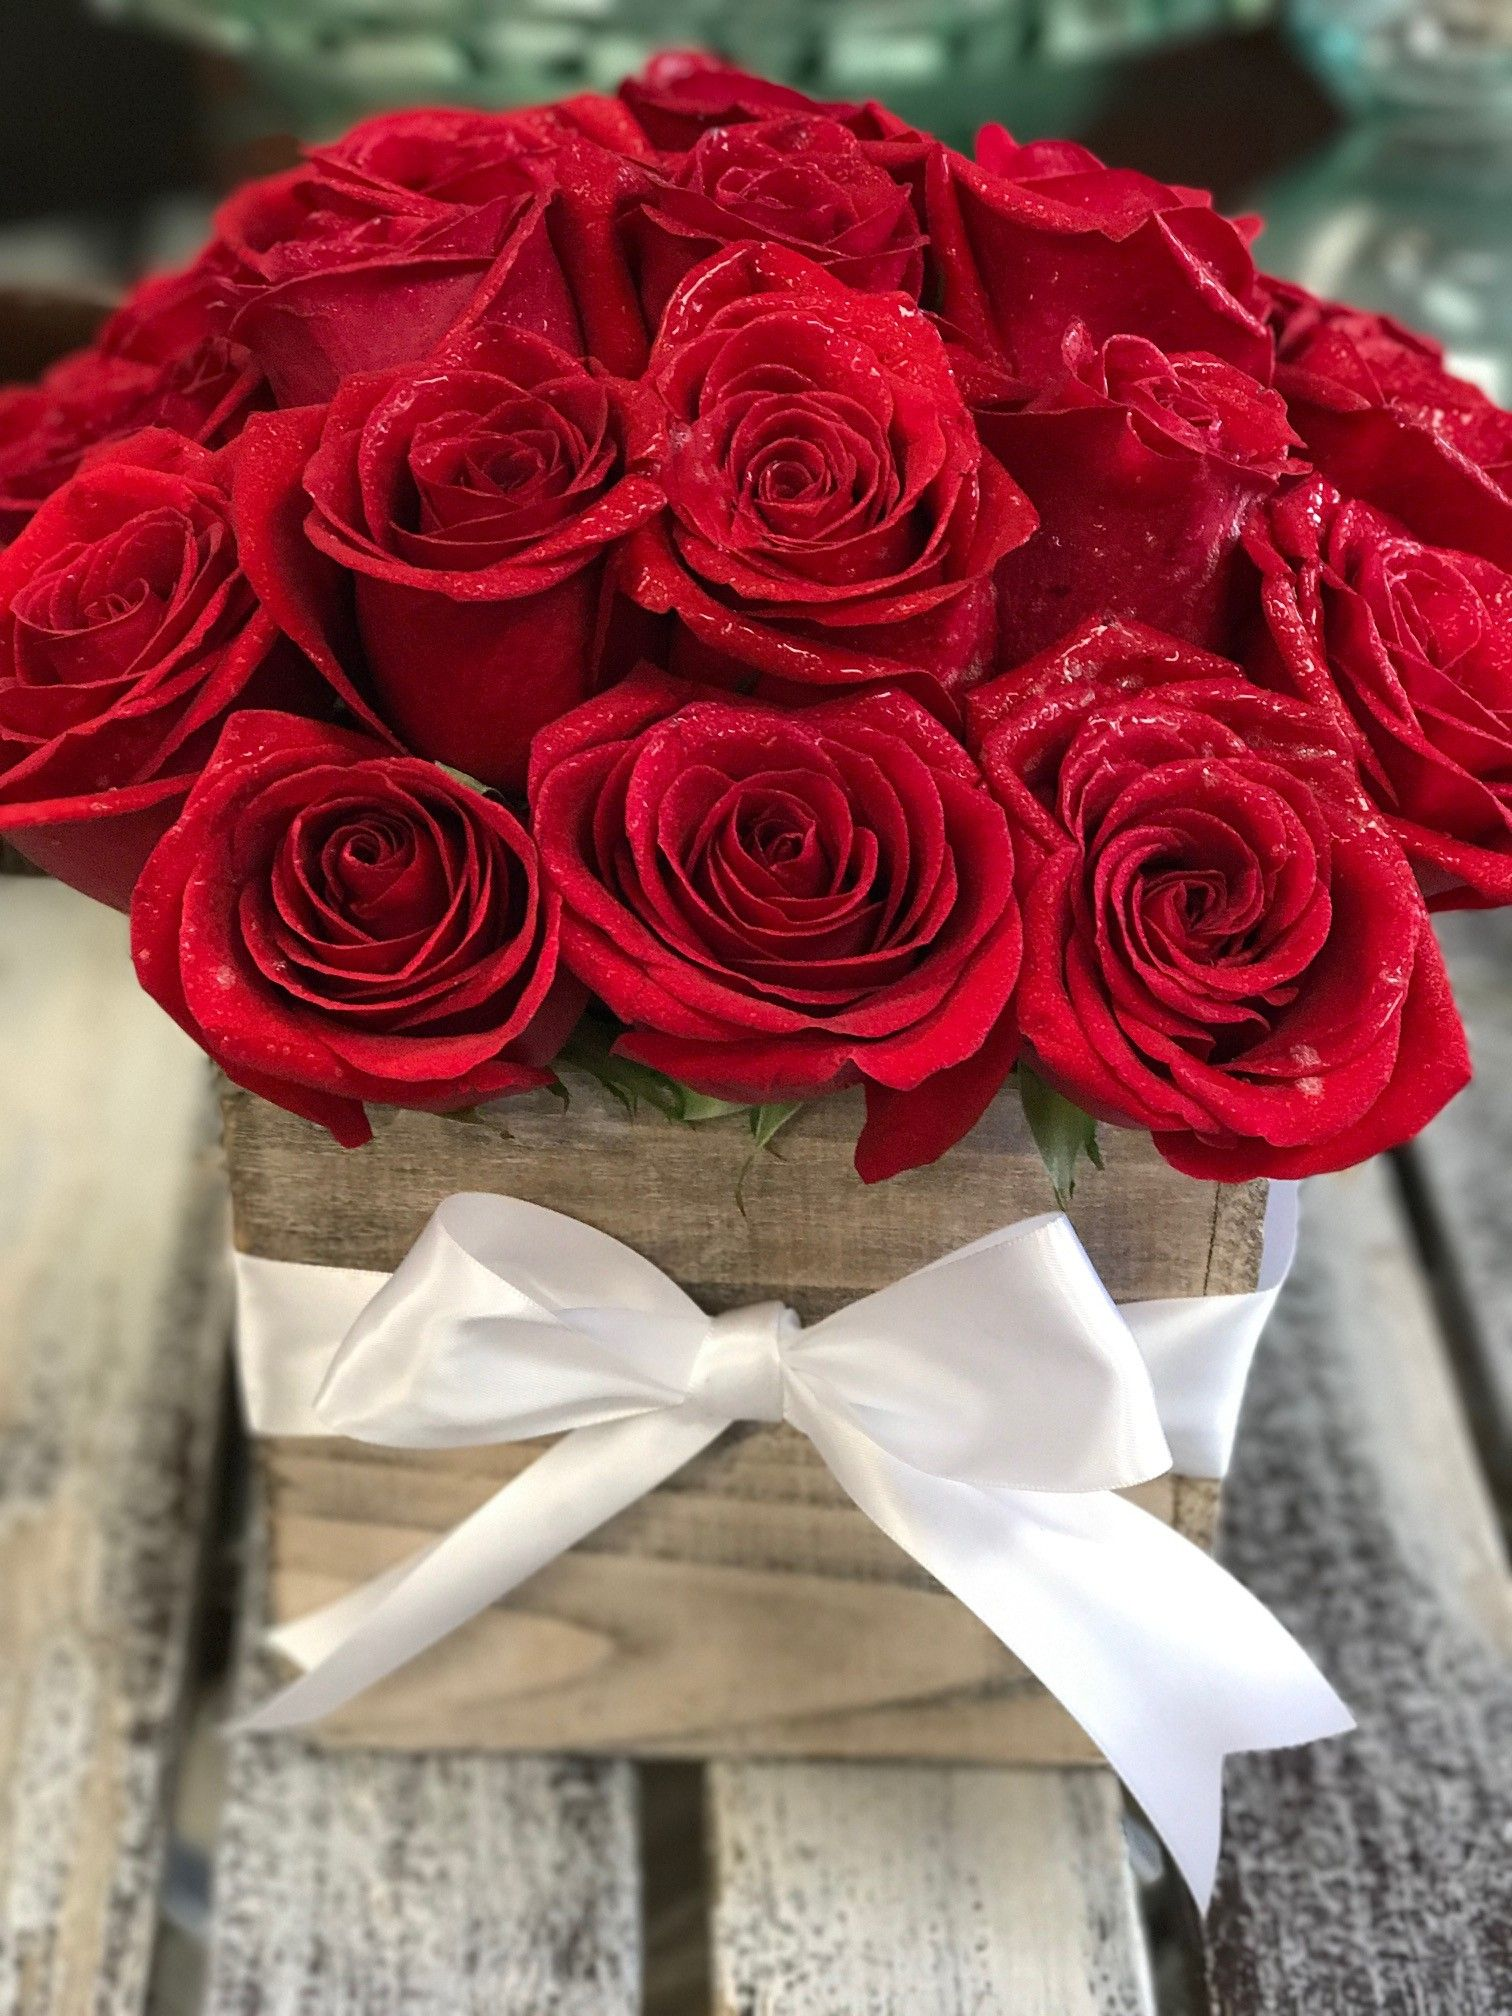 Rustic Rose By Bloomnation Red Flower Arrangements Red Rose Arrangements Flower Gift Ideas